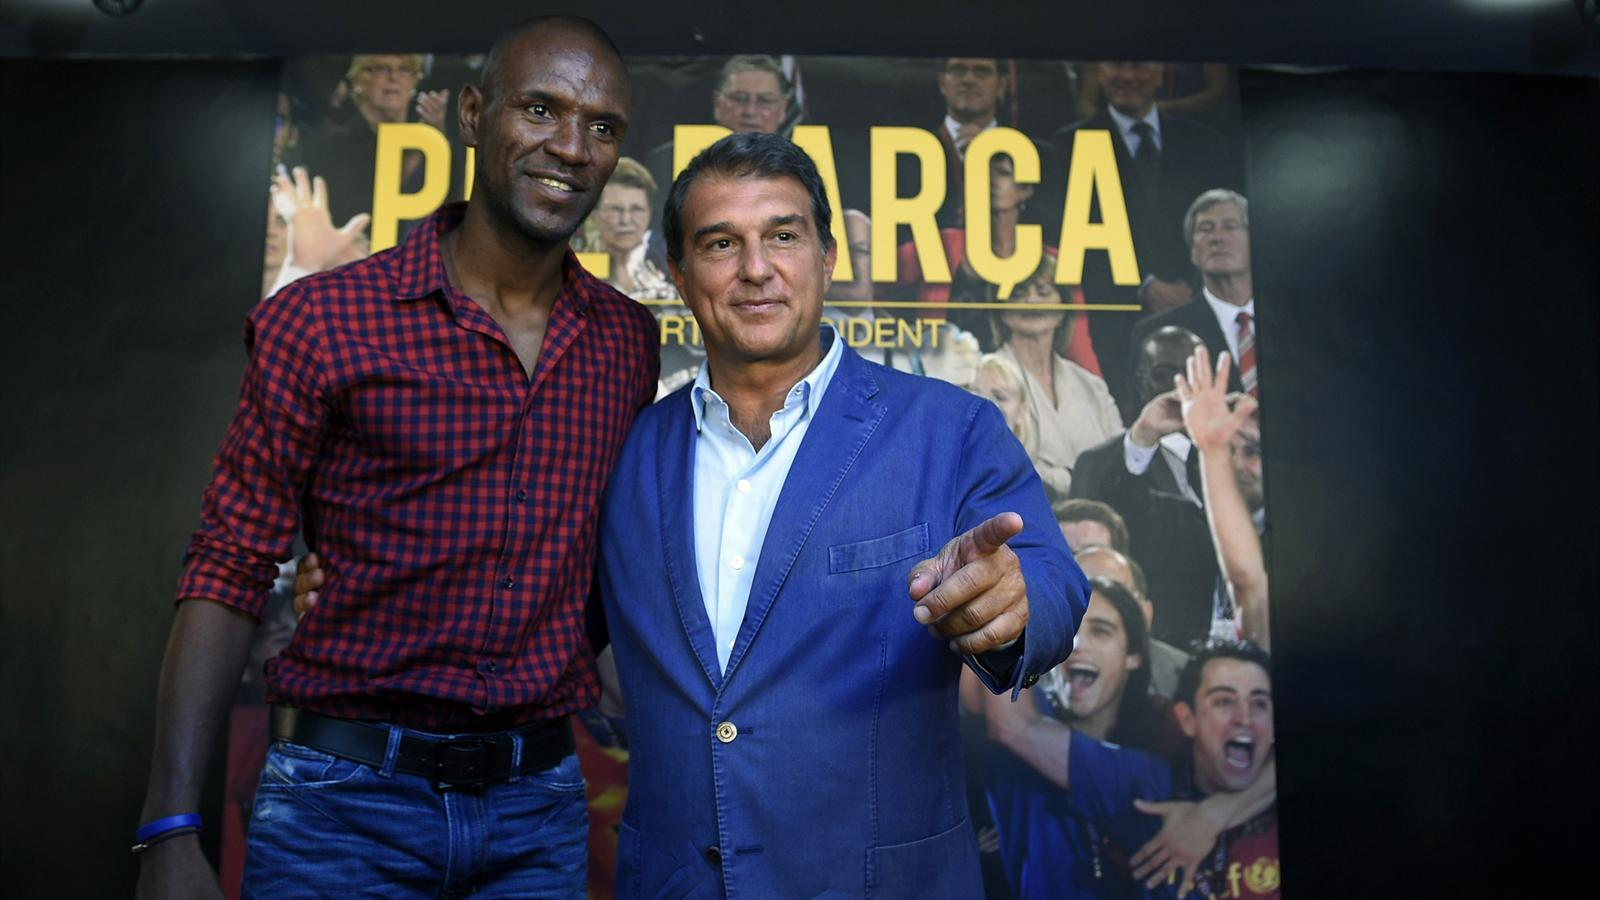 Candidate for presidency of FC Barcelona, Joan Laporta (R) poses with former FC Barcelona's player Eric Abidal during a press conference on his plans for the football team, in Barcelona on June 22, 2015